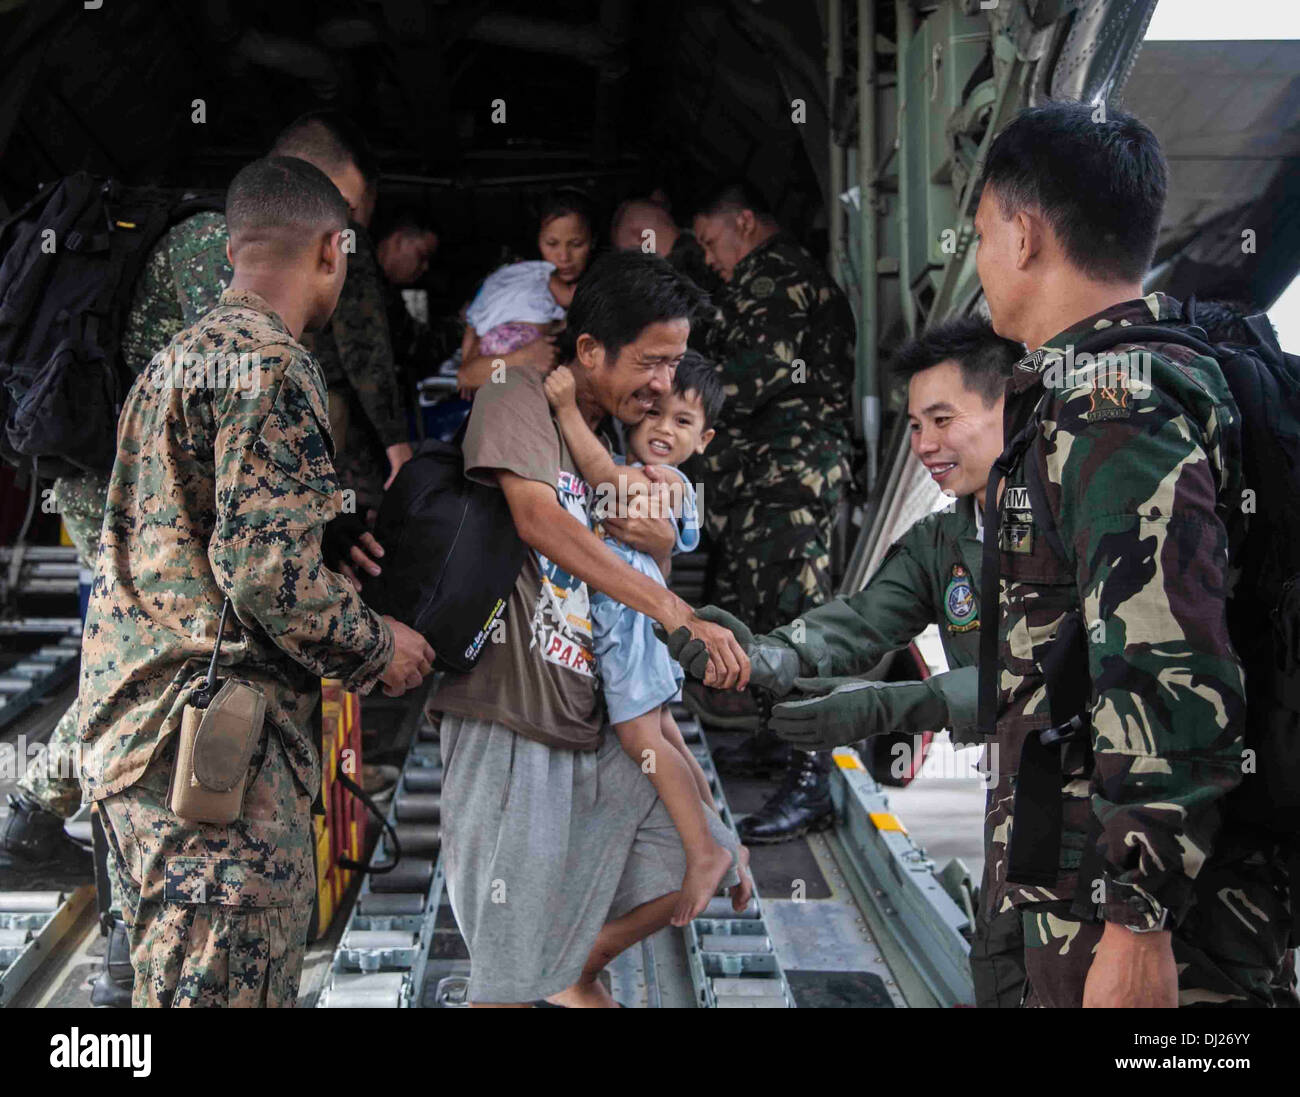 U.S. Marine Corps Cpl. Cannon and Members of the Philippine Armed Forces Help People Displaced by Typhoon Haiyan - Stock Image